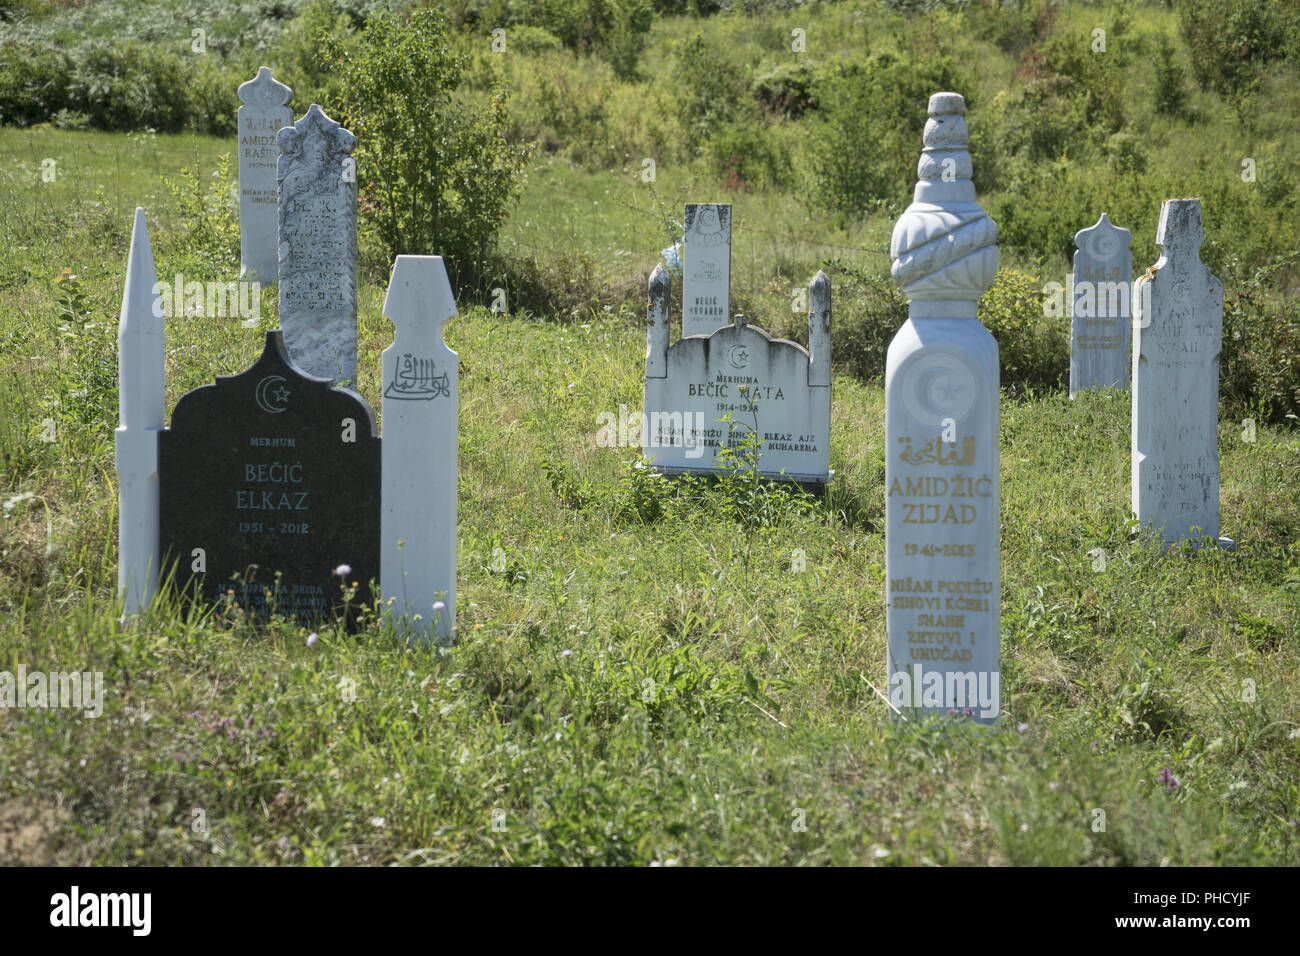 Islamic Graveyard with Tombstones, Bosnia - Stock Image